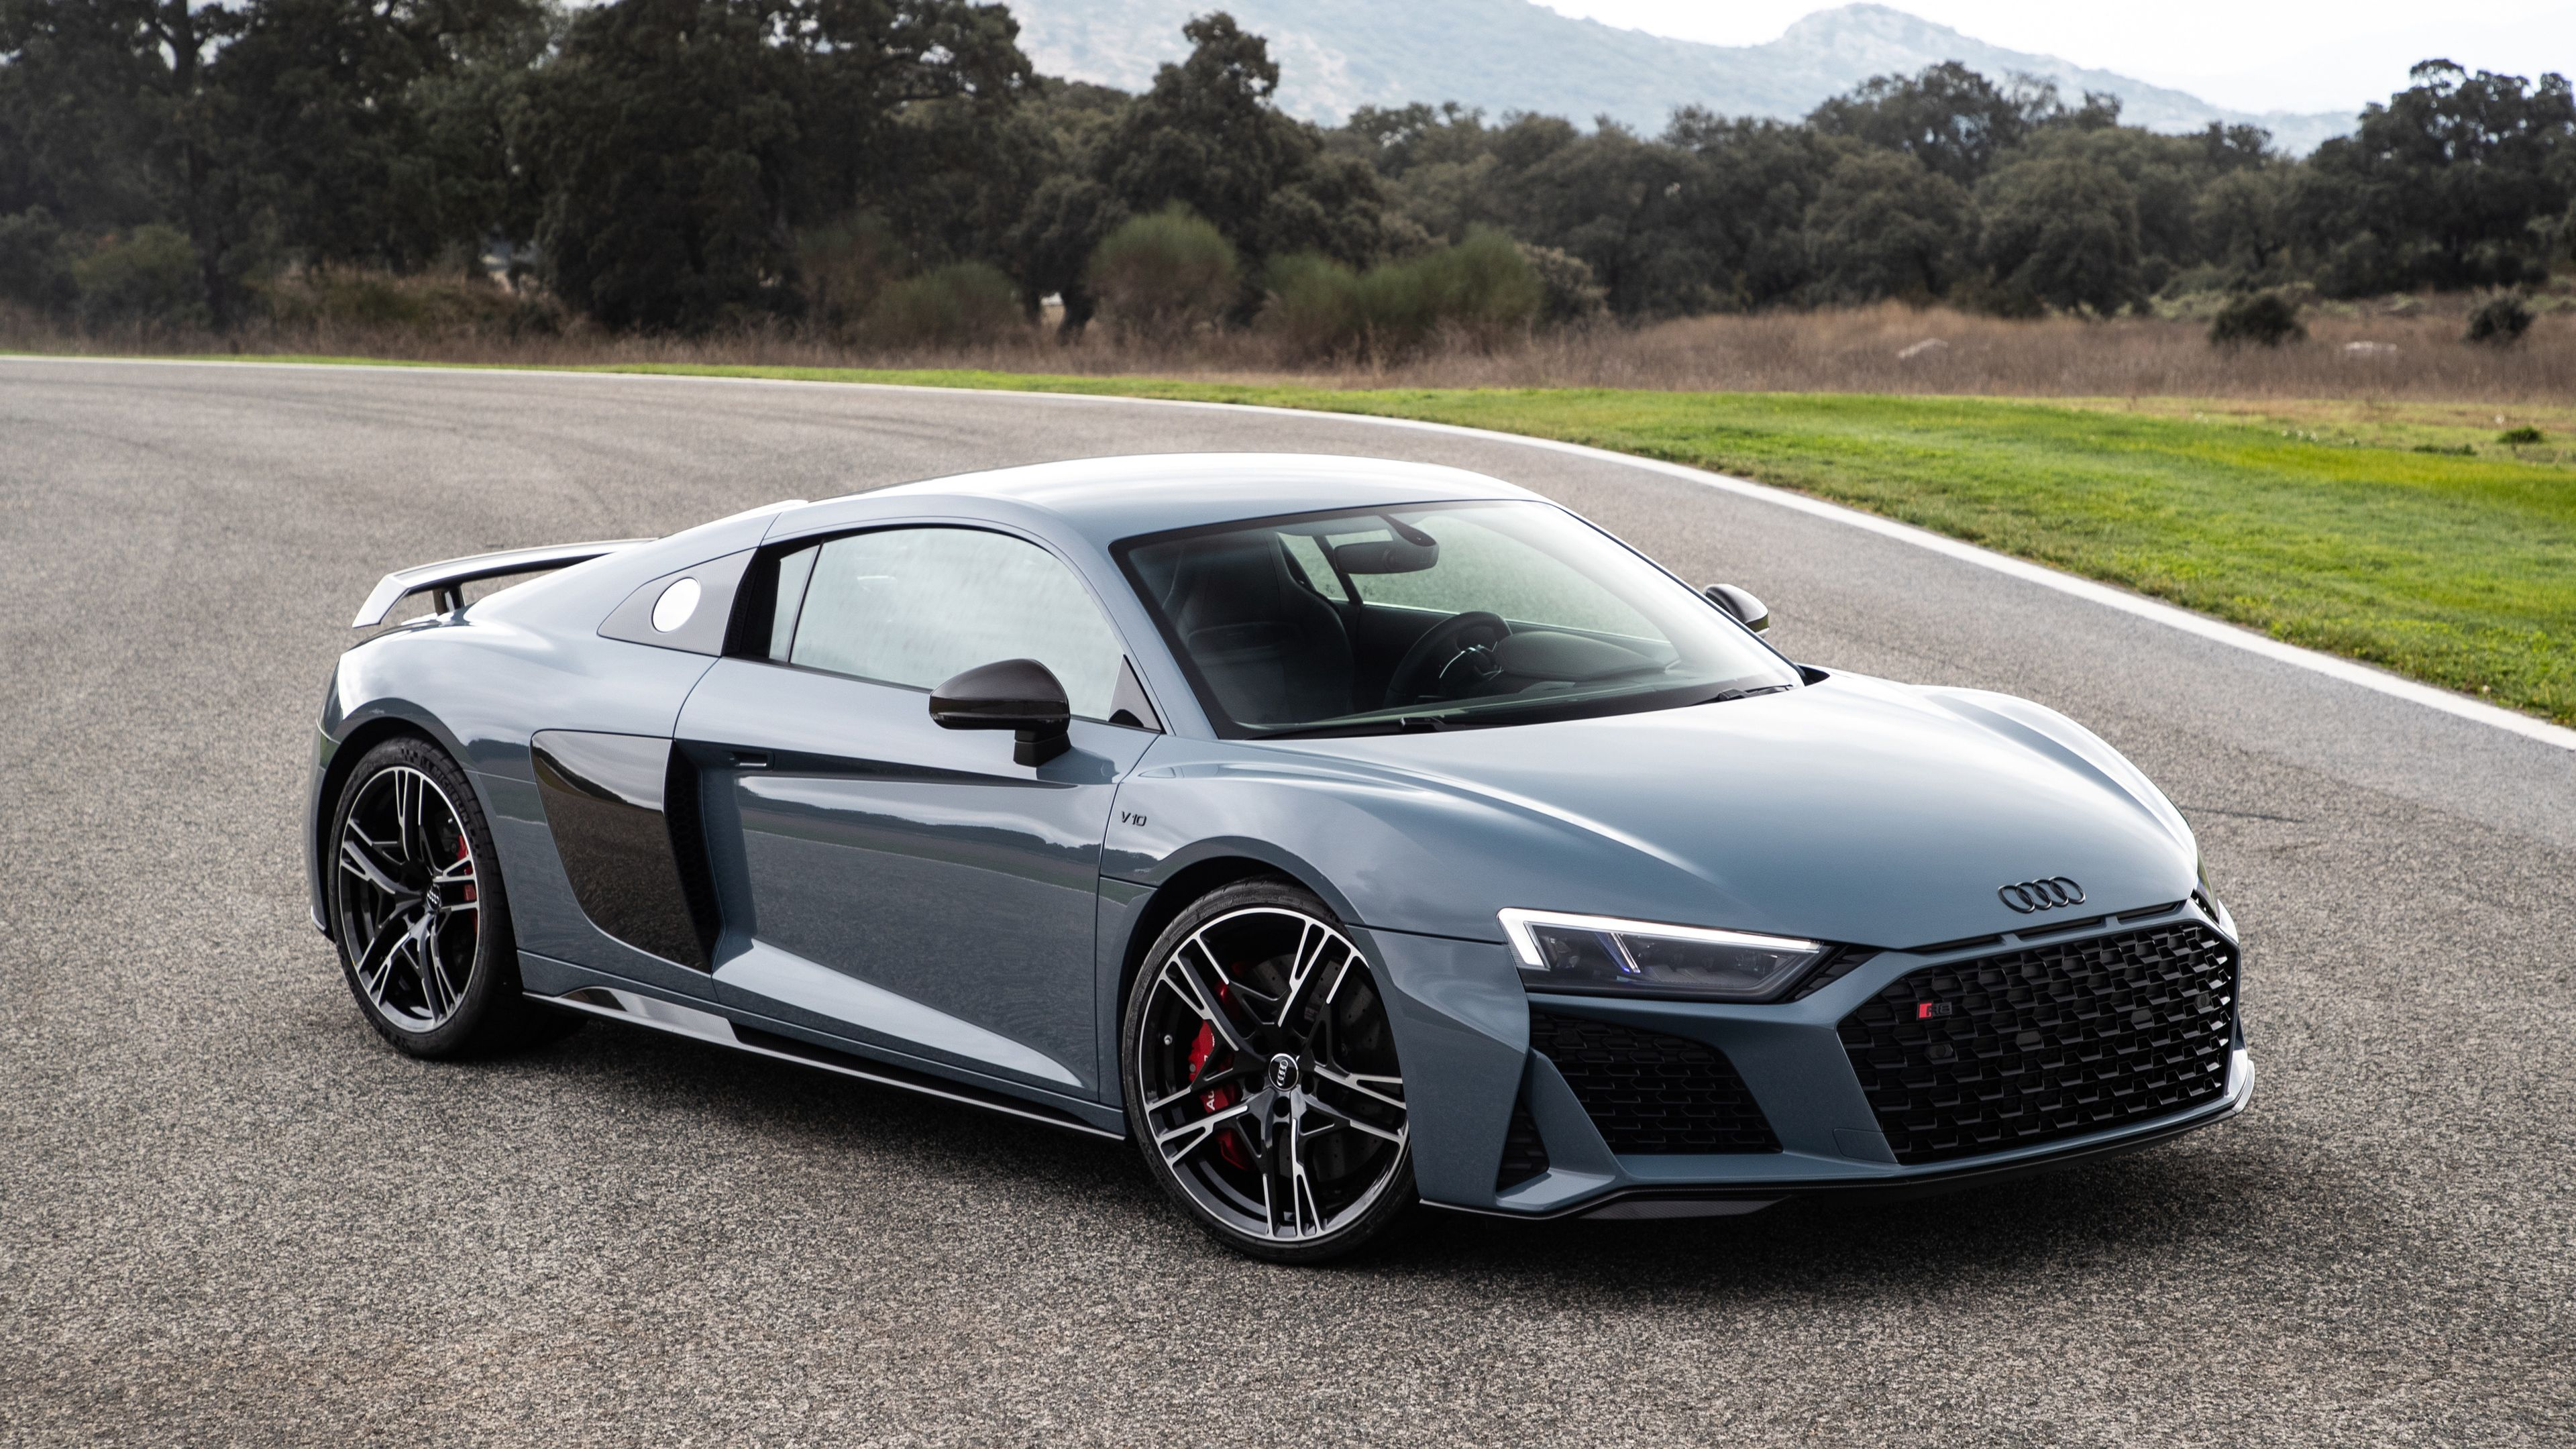 Audi R8 V10 2019 4k hd wallpapers cars wallpapers audi 3840x2160